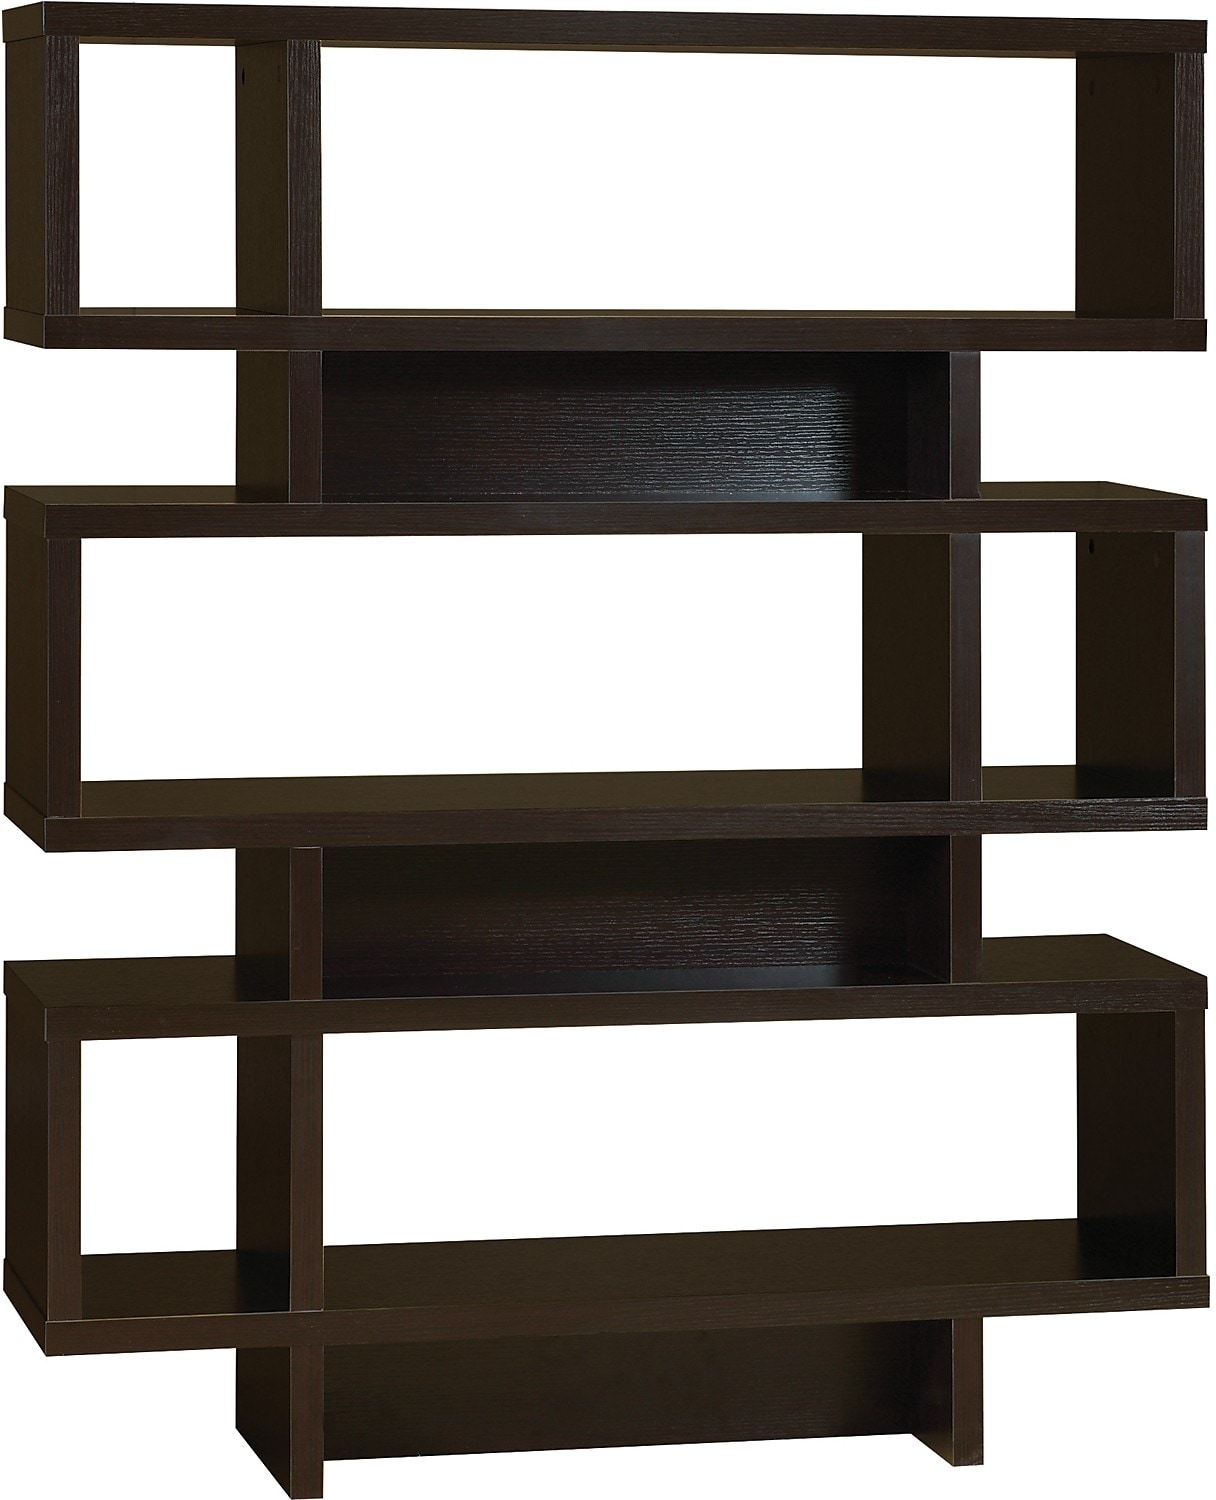 Bari Bookcase The Brick